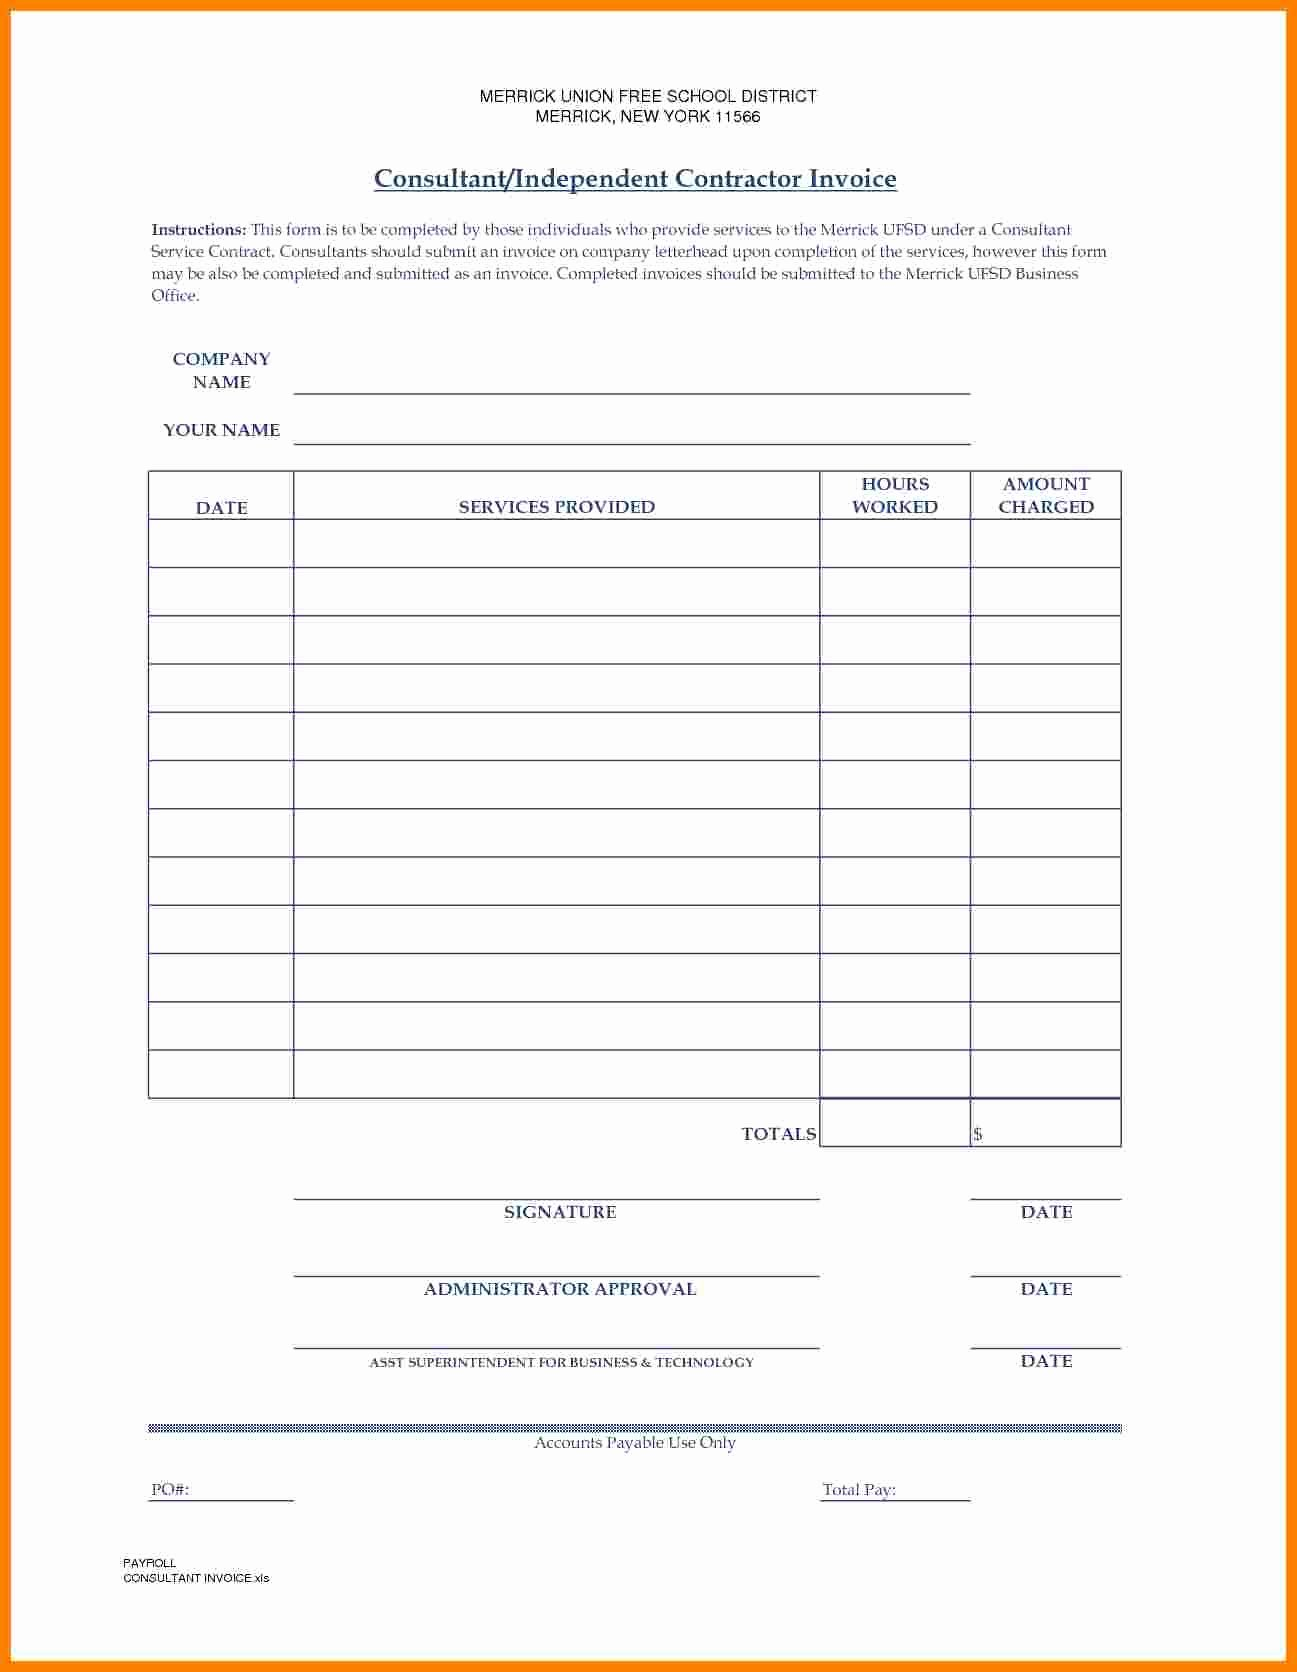 Independent Contractor Invoice Template Inspirational 7 Independent Contractor Invoice